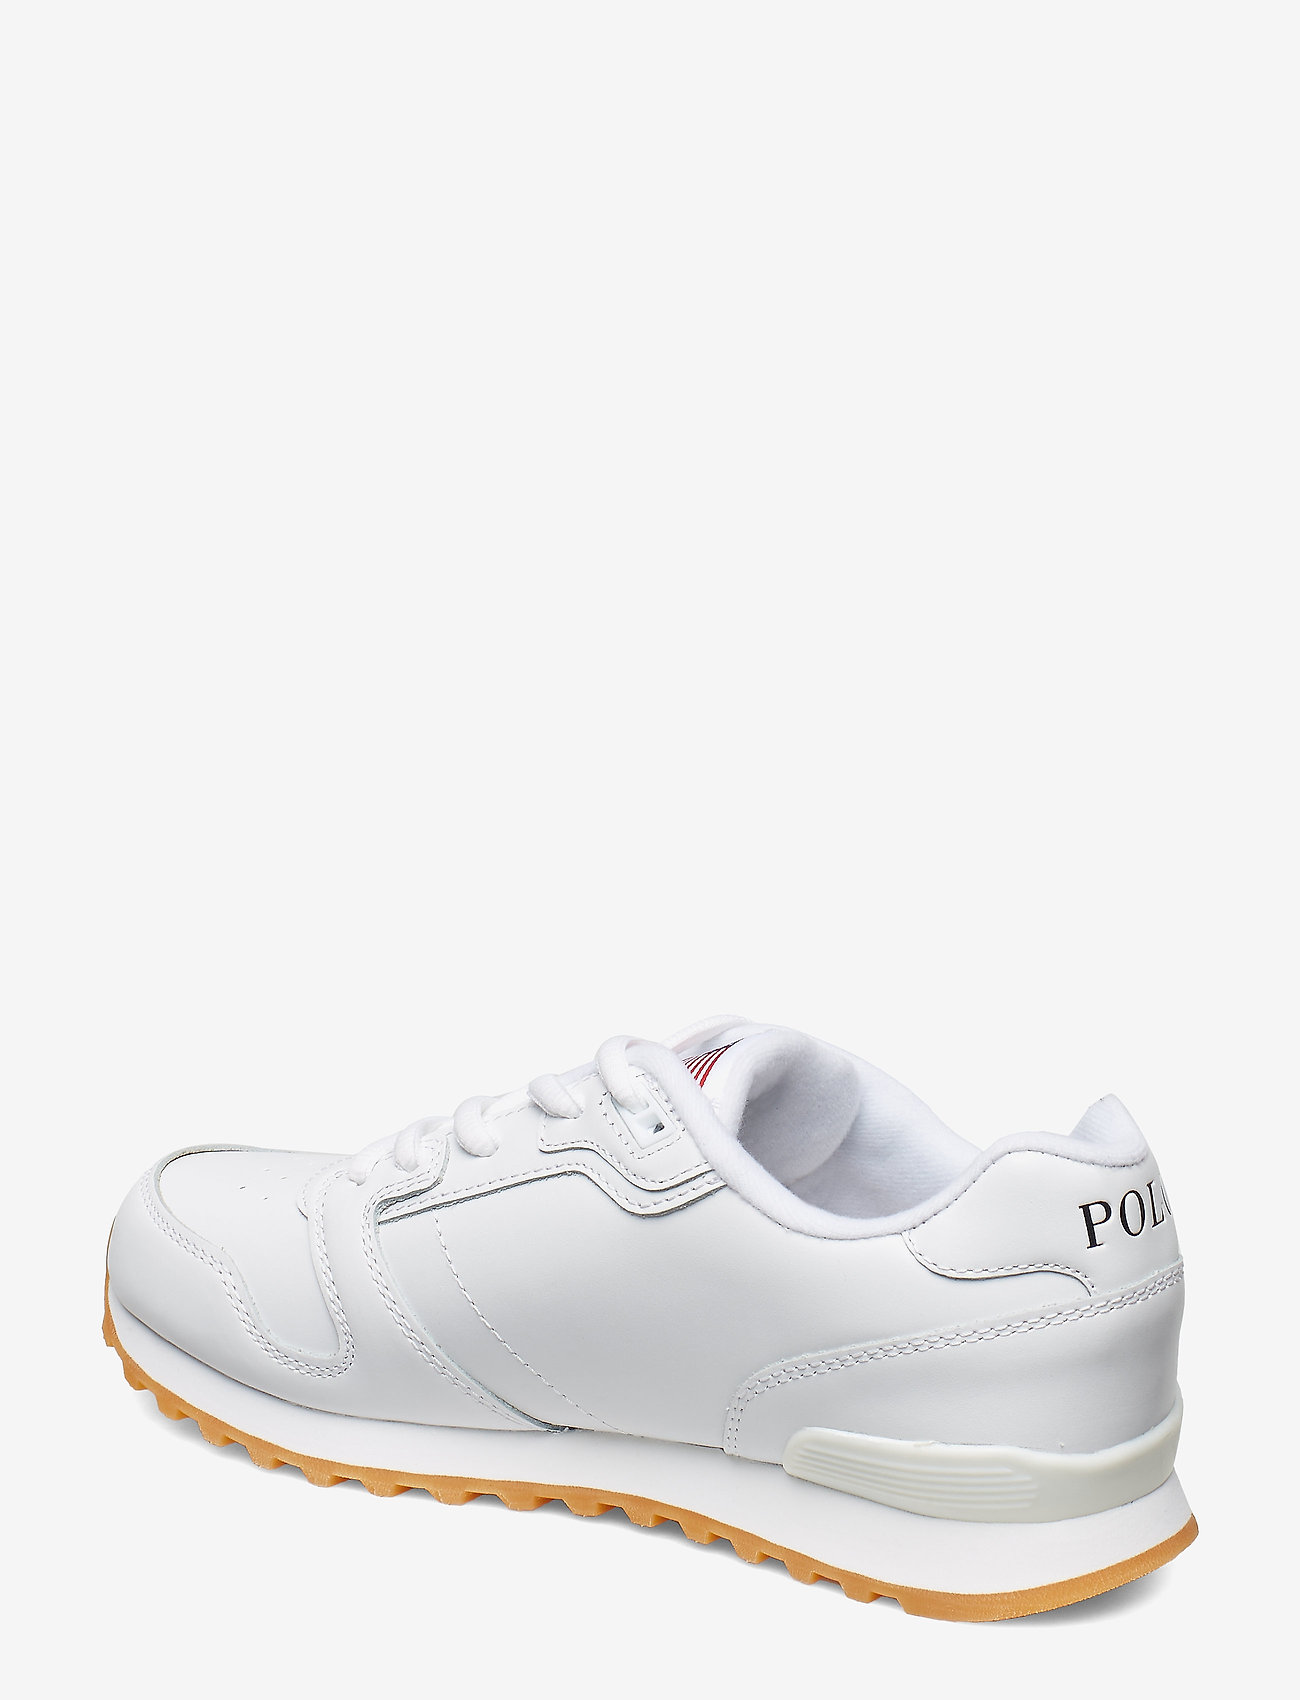 Polo Ralph Lauren - Classic Runner Leather Sneaker - low top sneakers - white - 1